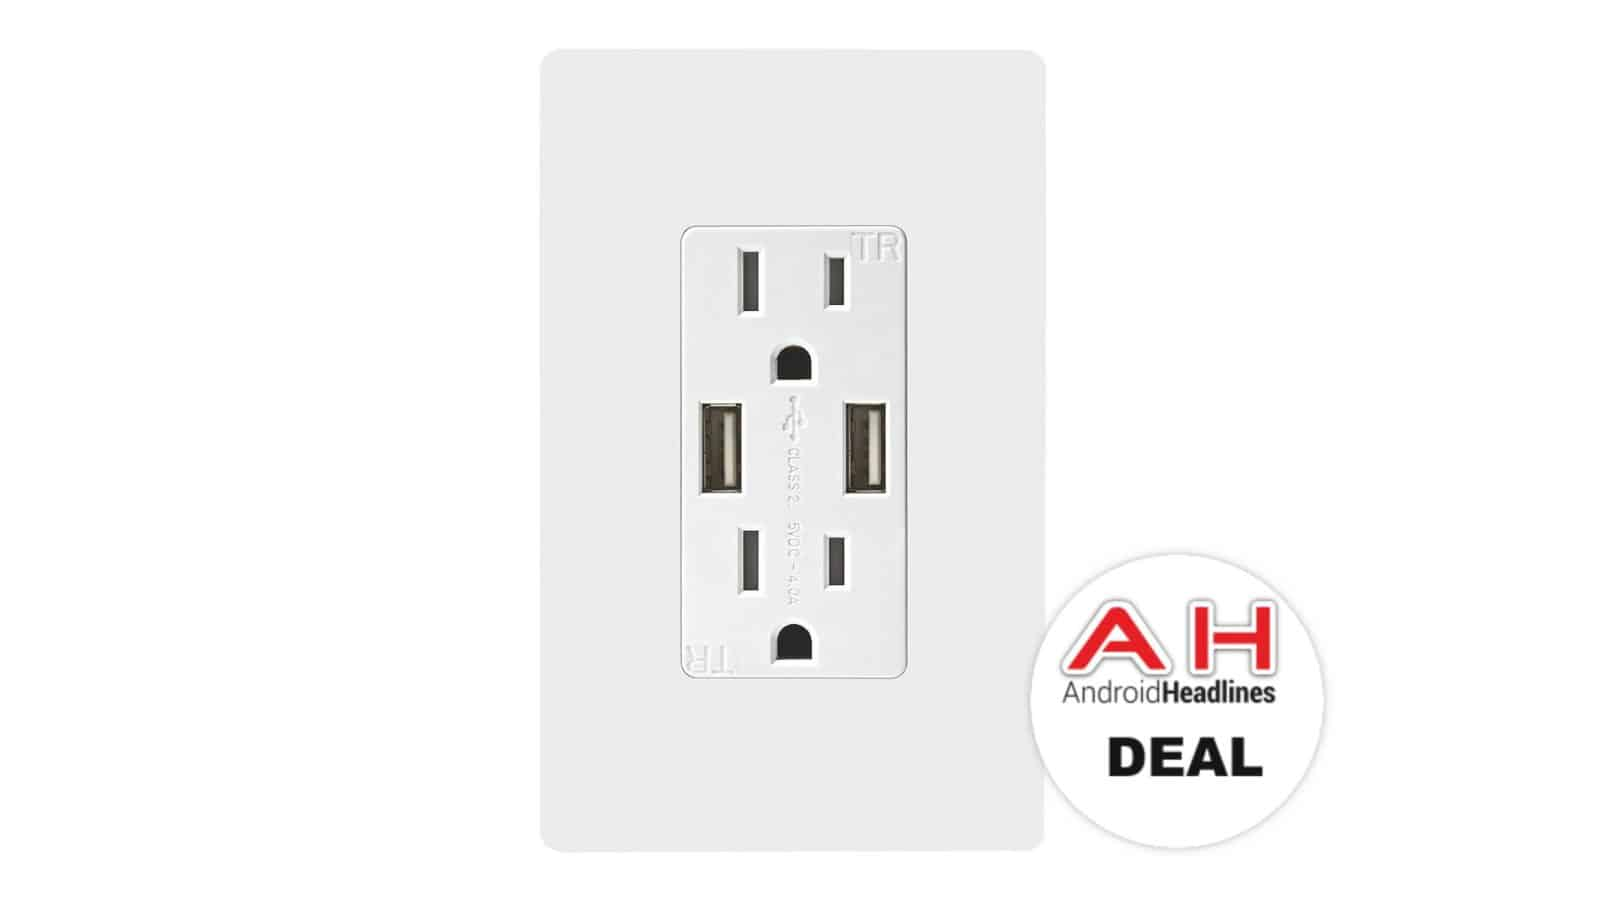 Deal: TOPGREENER Wall Outlet With 2 USB & 2 AC Outlets for $16 - 3/8 ...